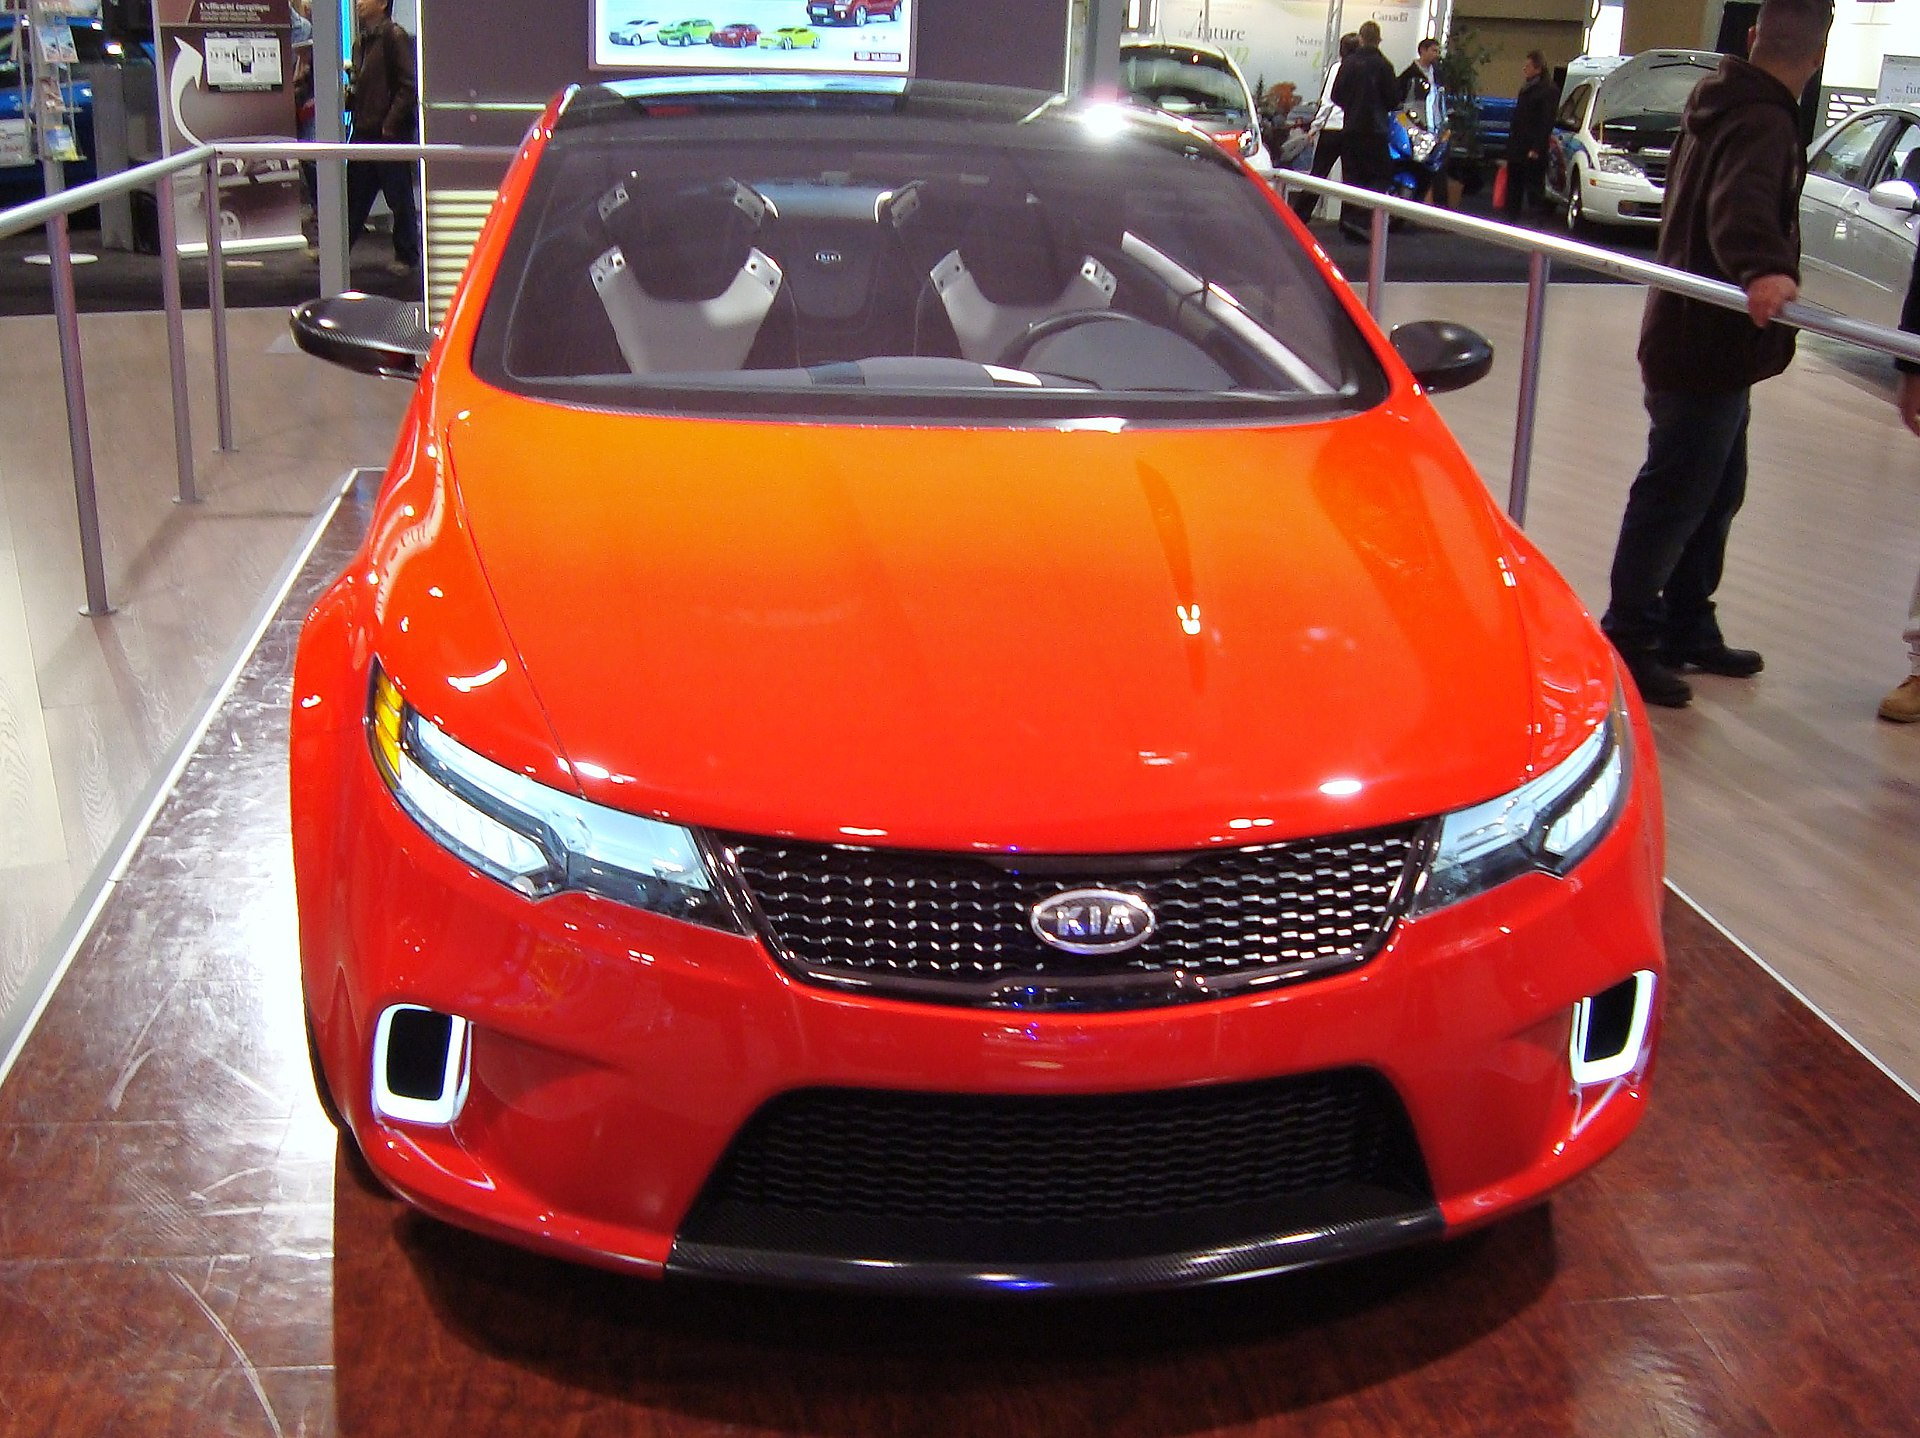 Kia koup wikipedia for Kia motors irvine ca